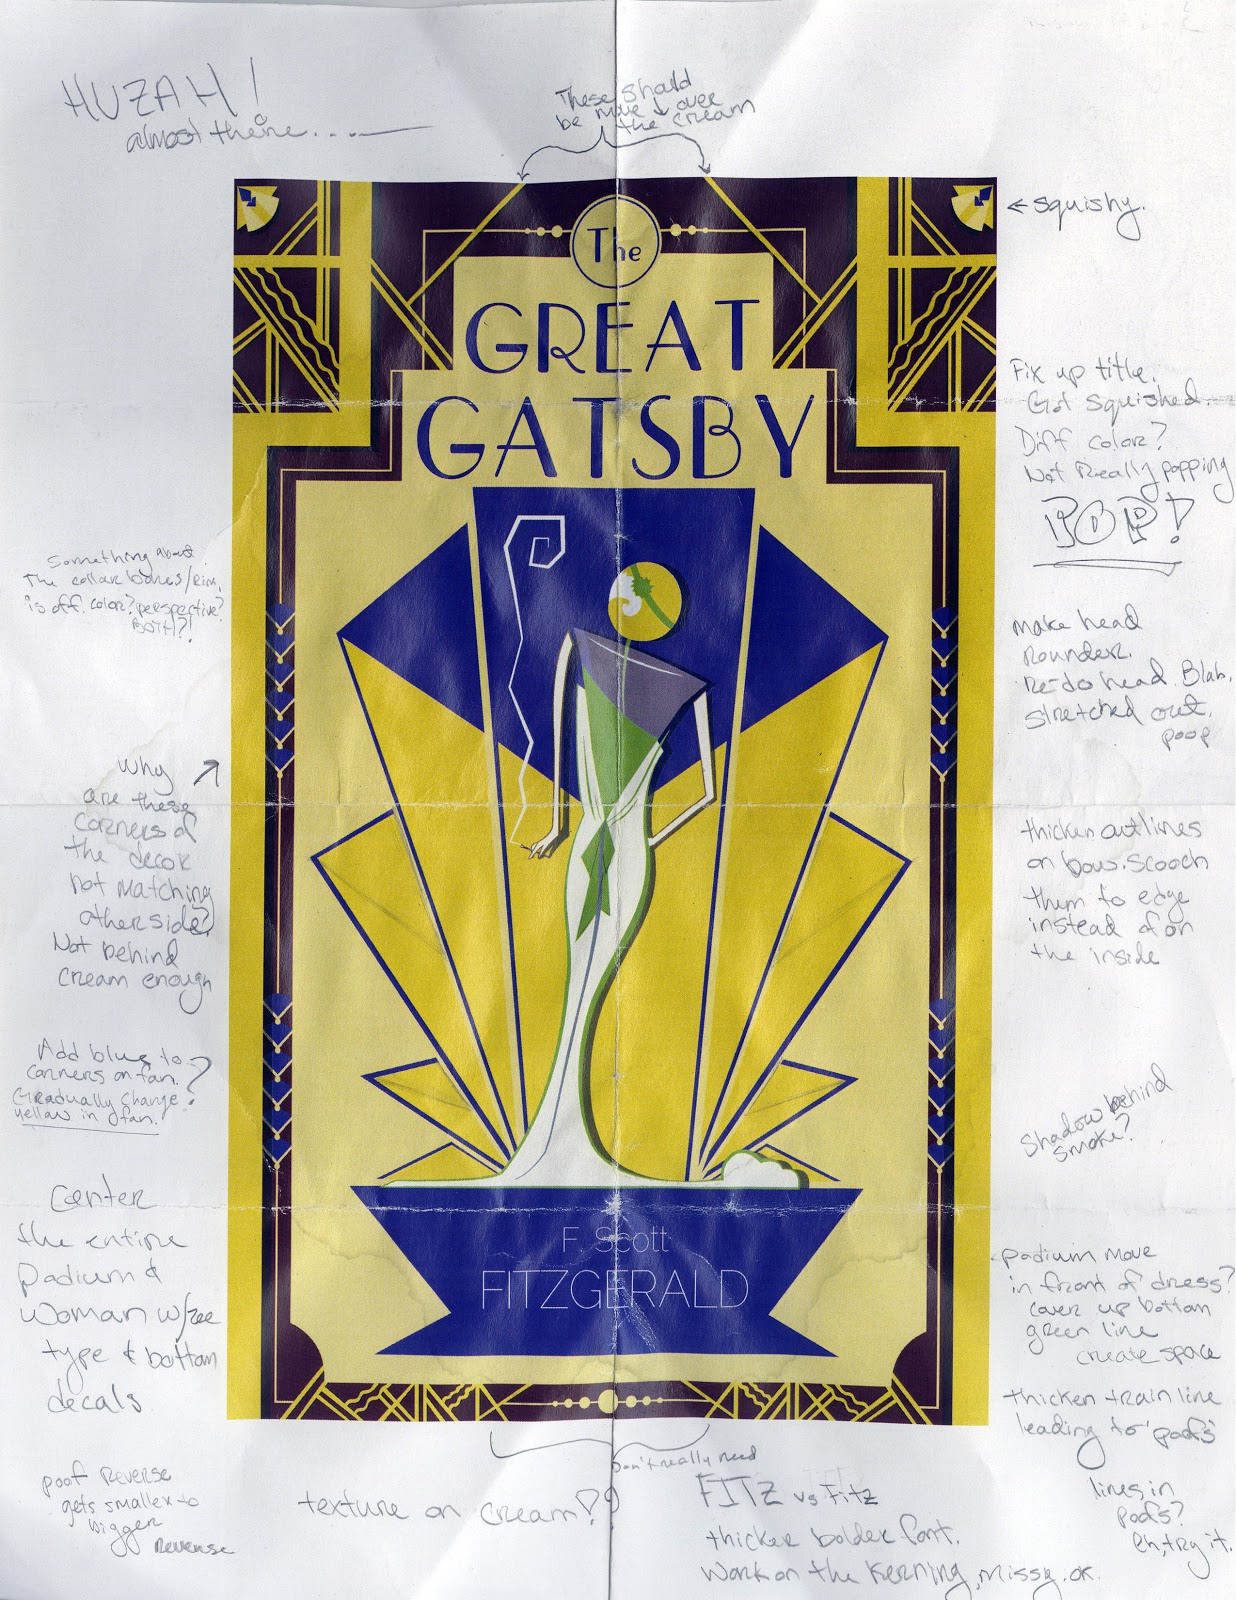 essays on symbolism in the great gatsby Essay about great gatsby a symbol is an object or place used to represent an abstract idea or quality in the novel the great gatsby by f scott fitzgerald there are many such symbols f scott fitzgerald incorporates each symbol into.